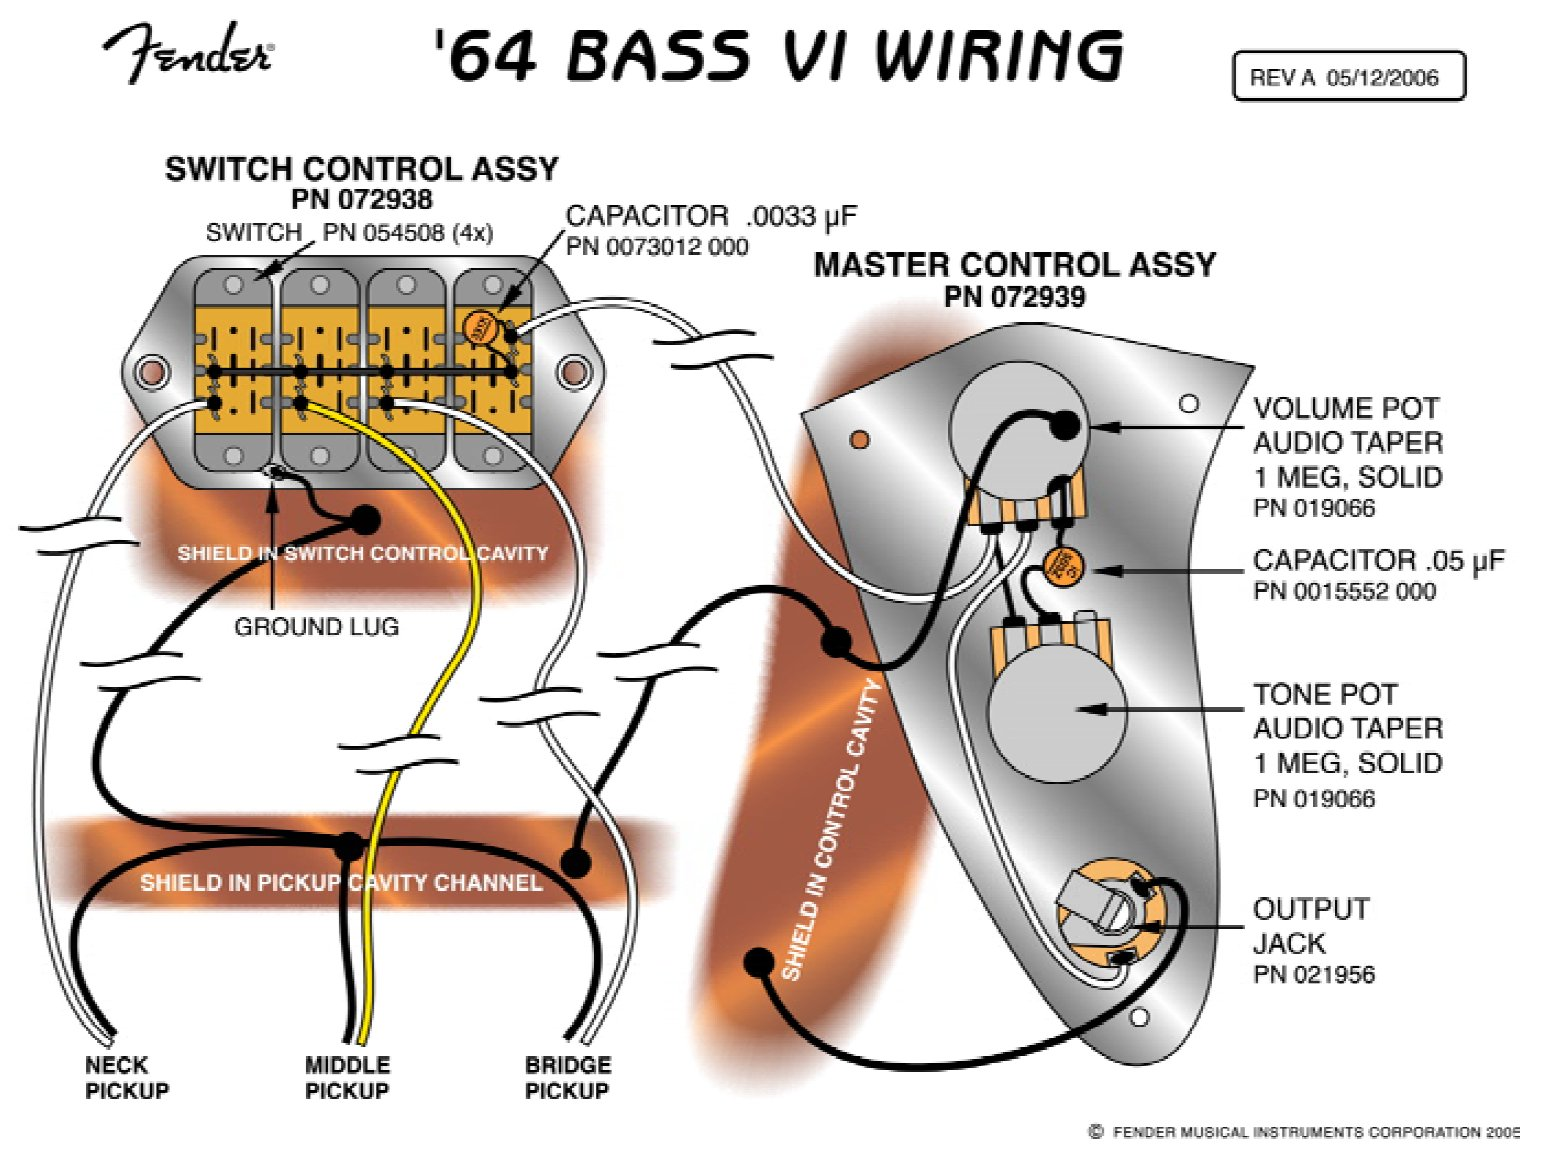 Charming jaguar bass active eq wiring diagram contemporary best fender jazz bass wiring diagram 1962 and later jazz bass asfbconference2016 Choice Image